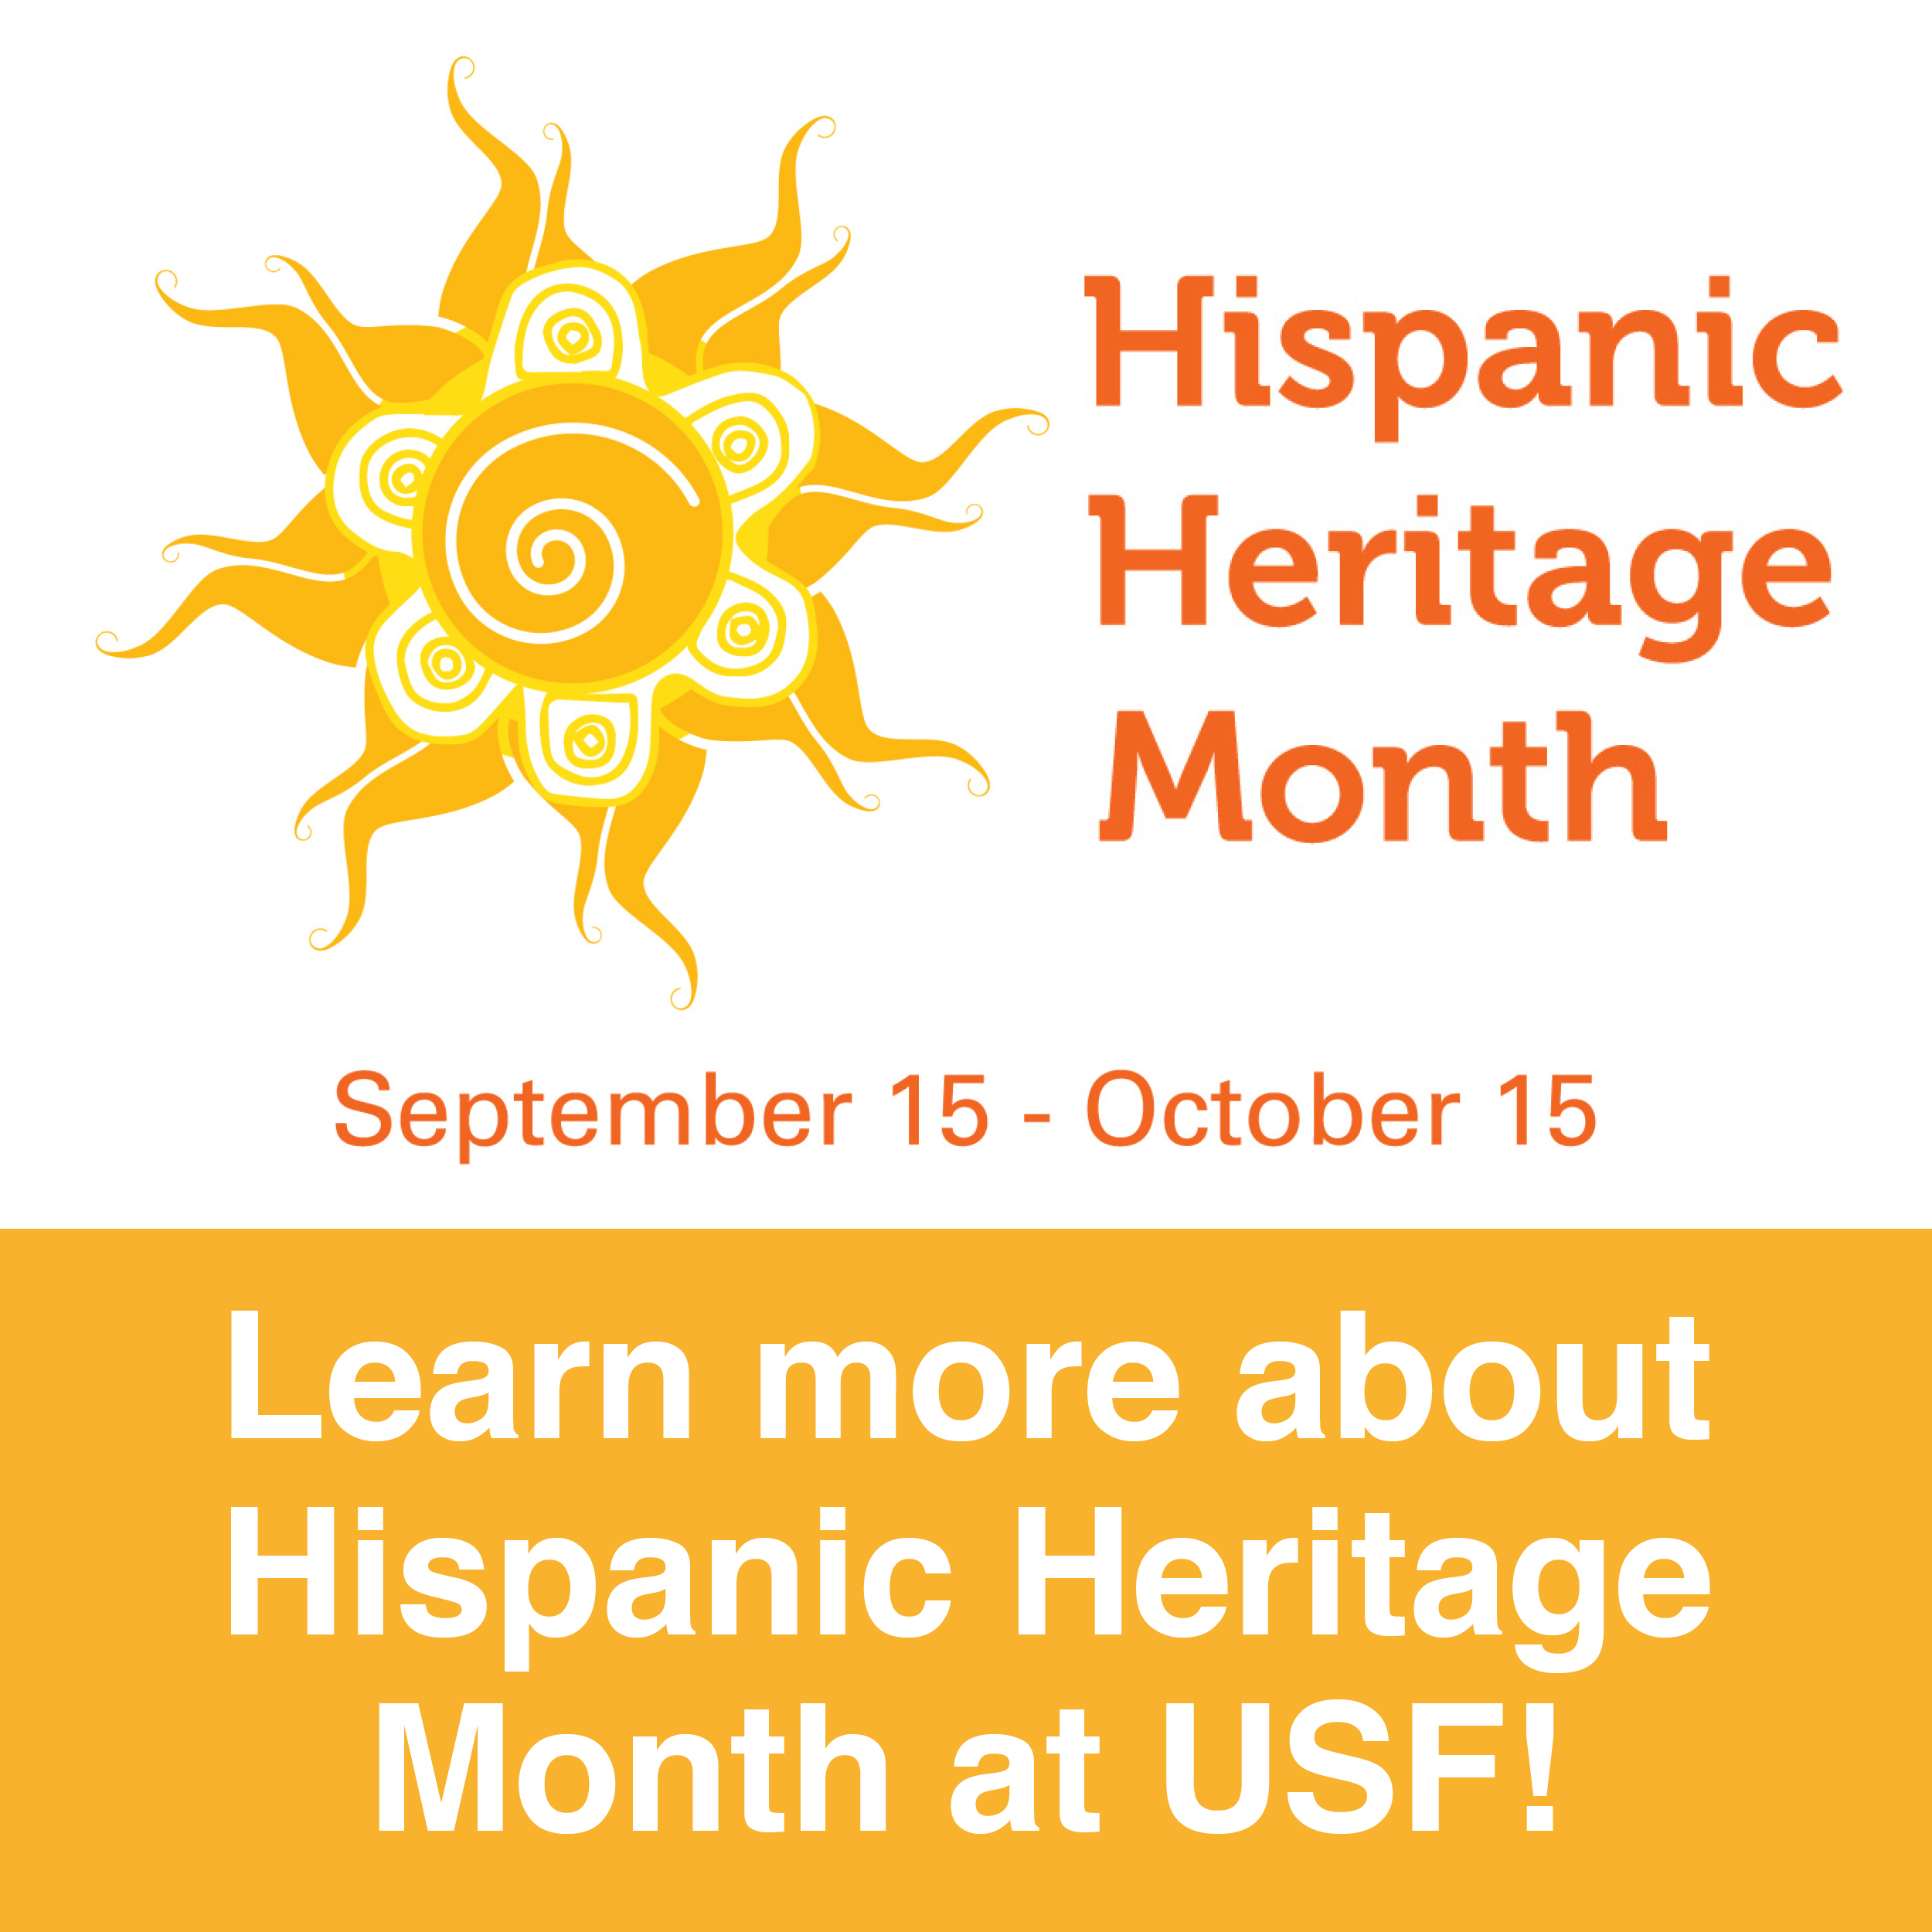 Learn more about Hispanic Heritage Month at USF!